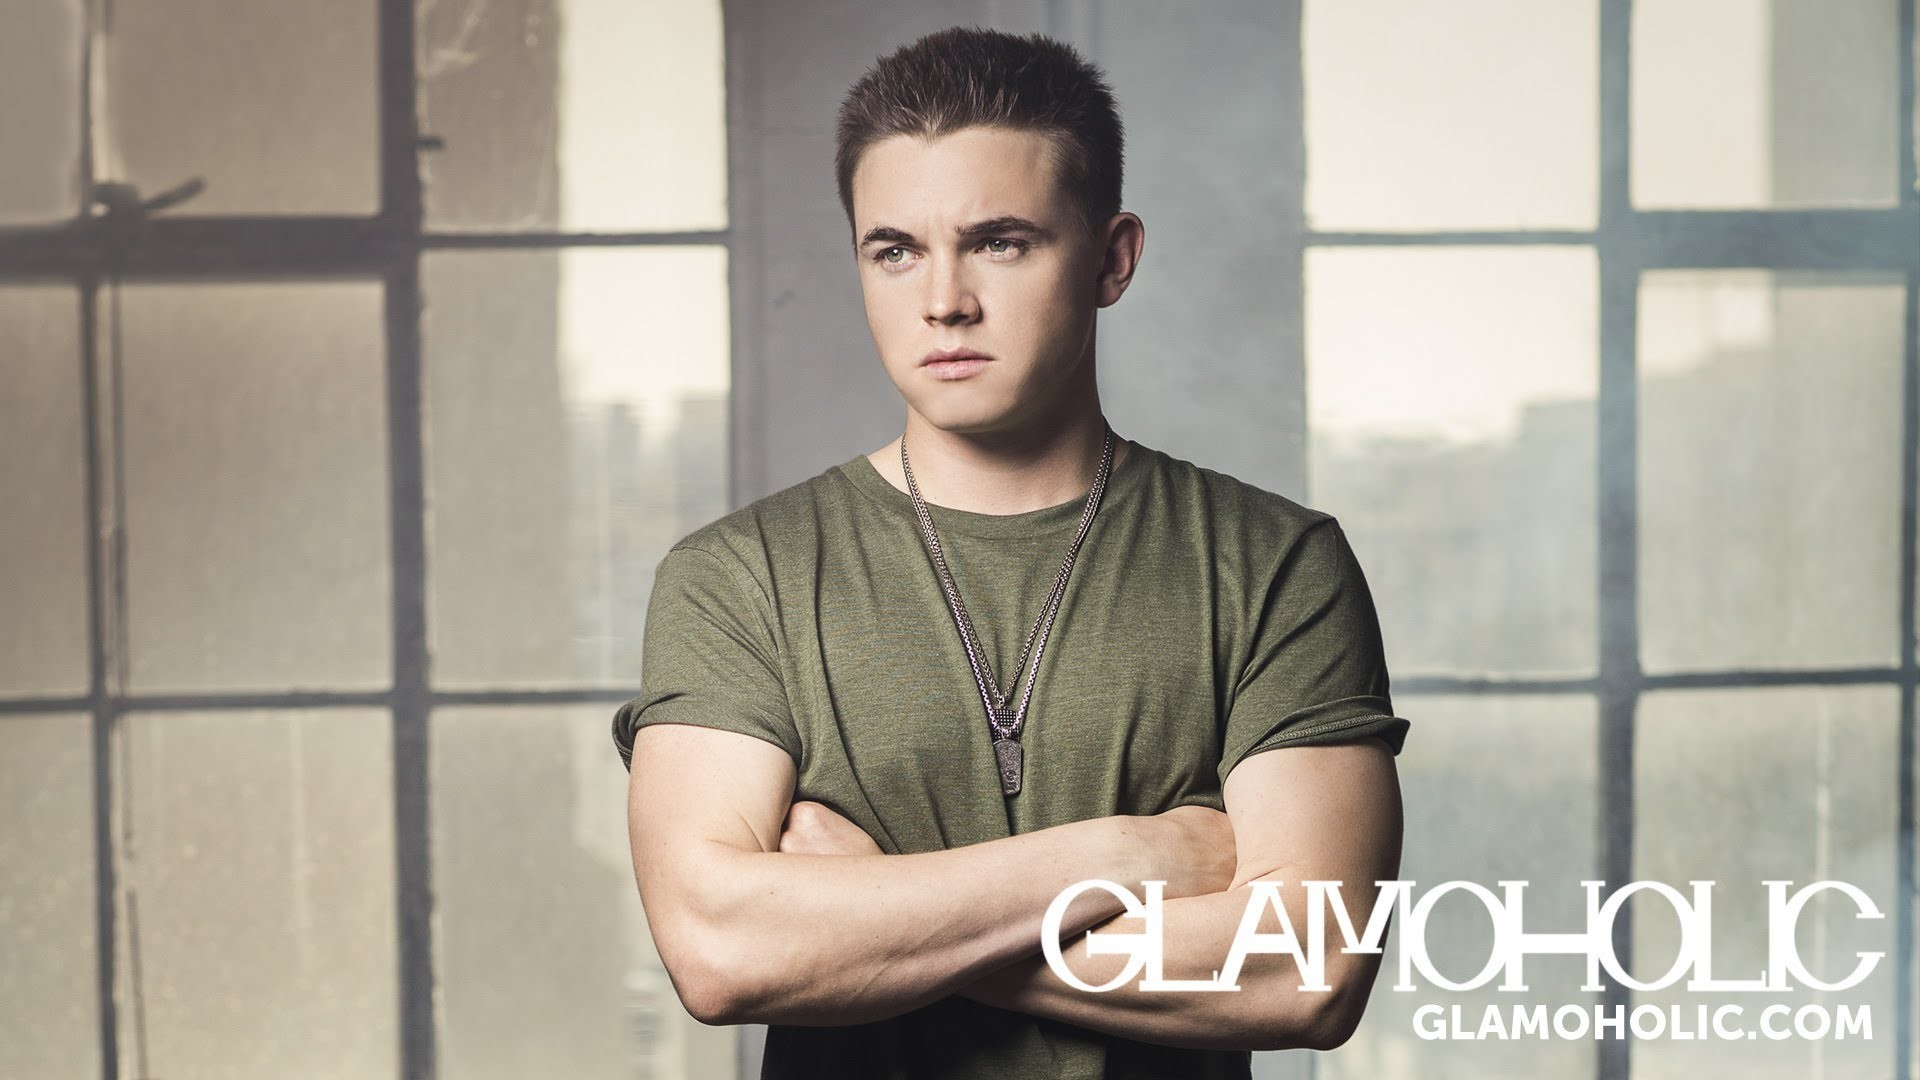 1920x1080 Jesse McCartney - Glamoholic Cover Shoot - Catch and Release (New Song) -  YouTube